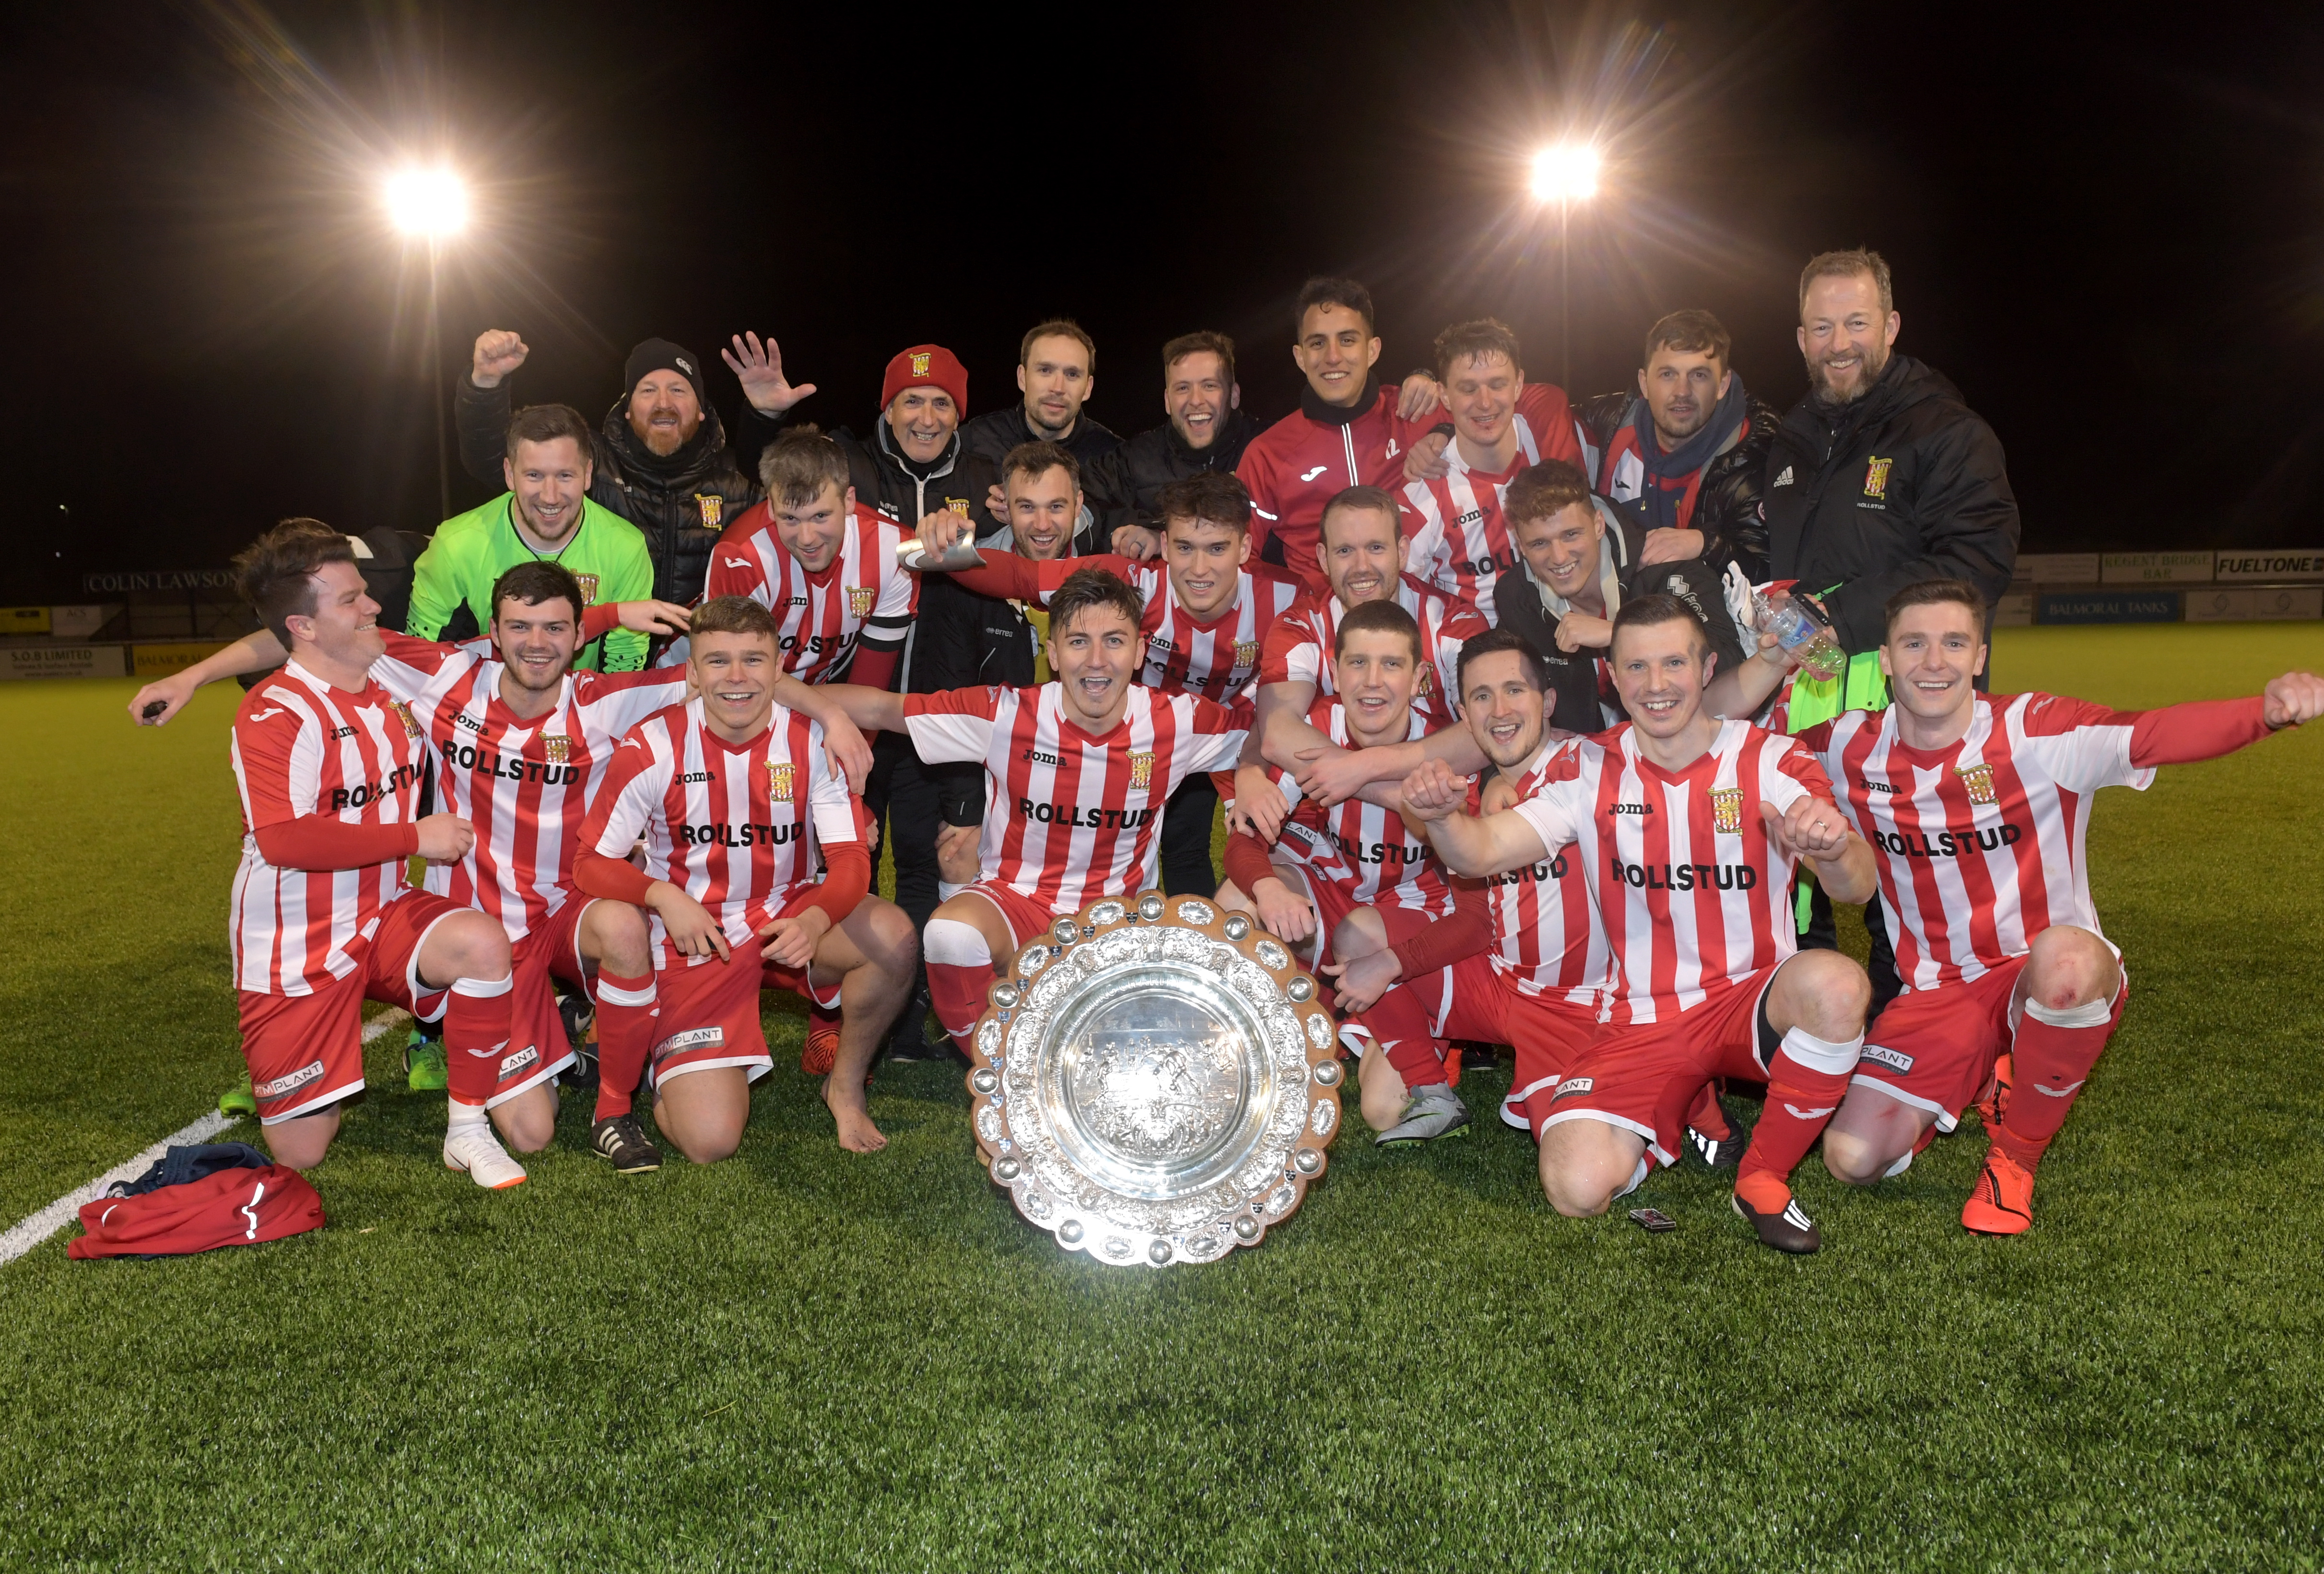 Formartine United won last year's Aberdeenshire Shield. Pictures by Kath Flannery